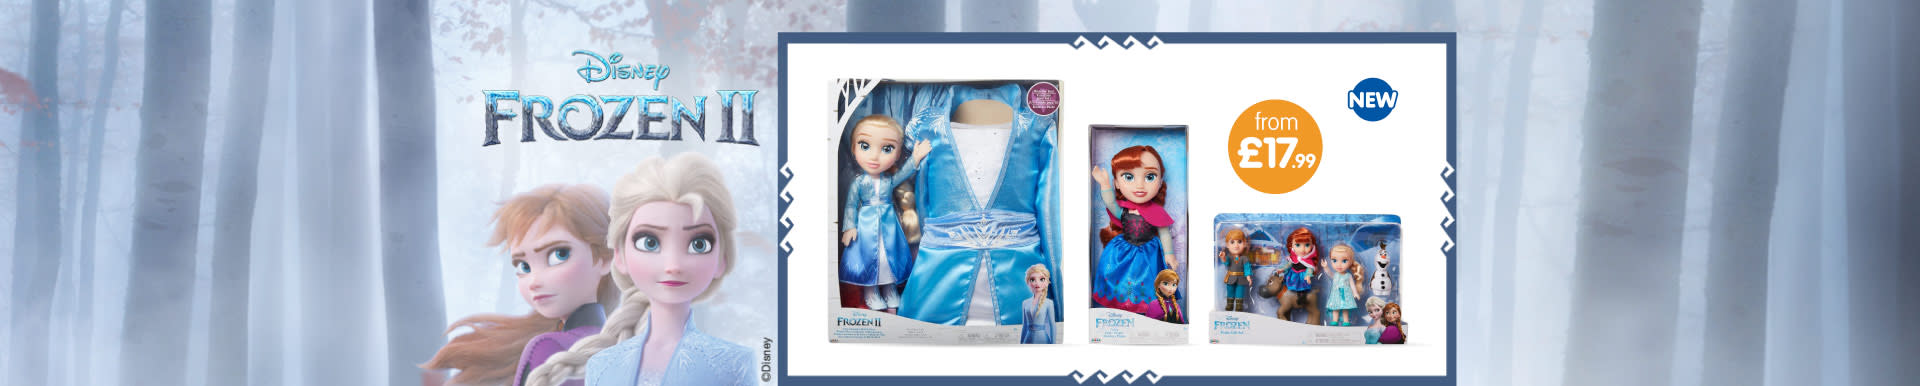 New Frozen 2 Toys now in-store at B&M.